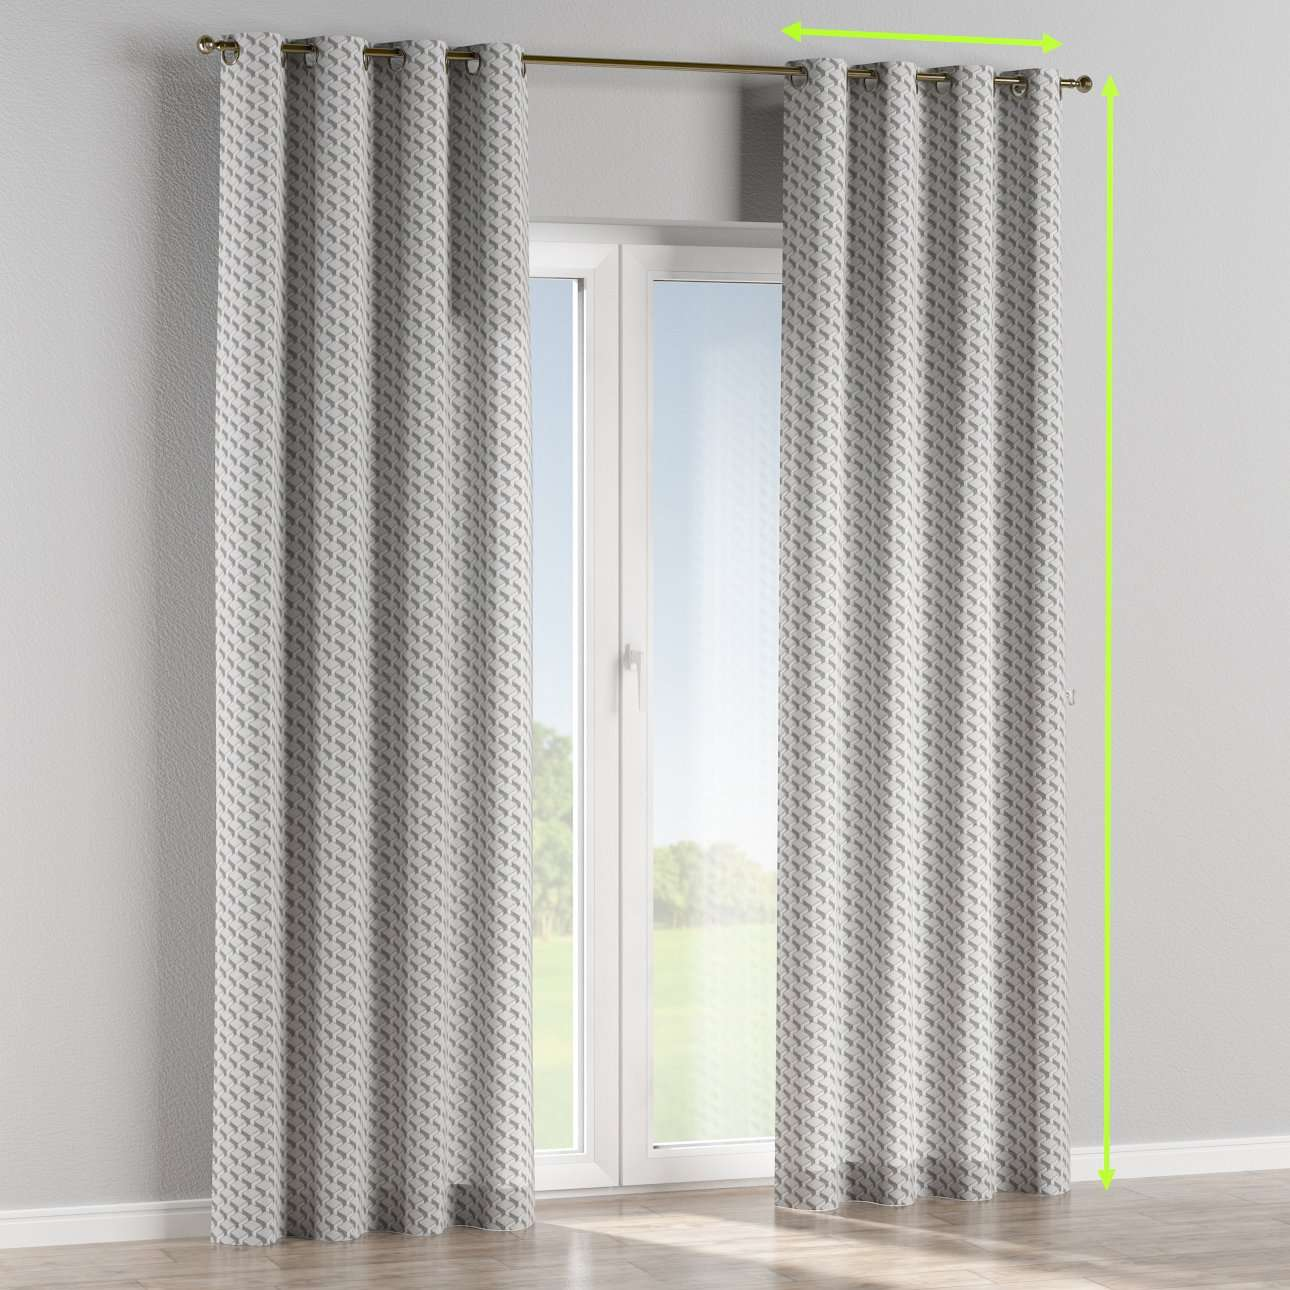 Eyelet lined curtains in collection Rustica, fabric: 138-18